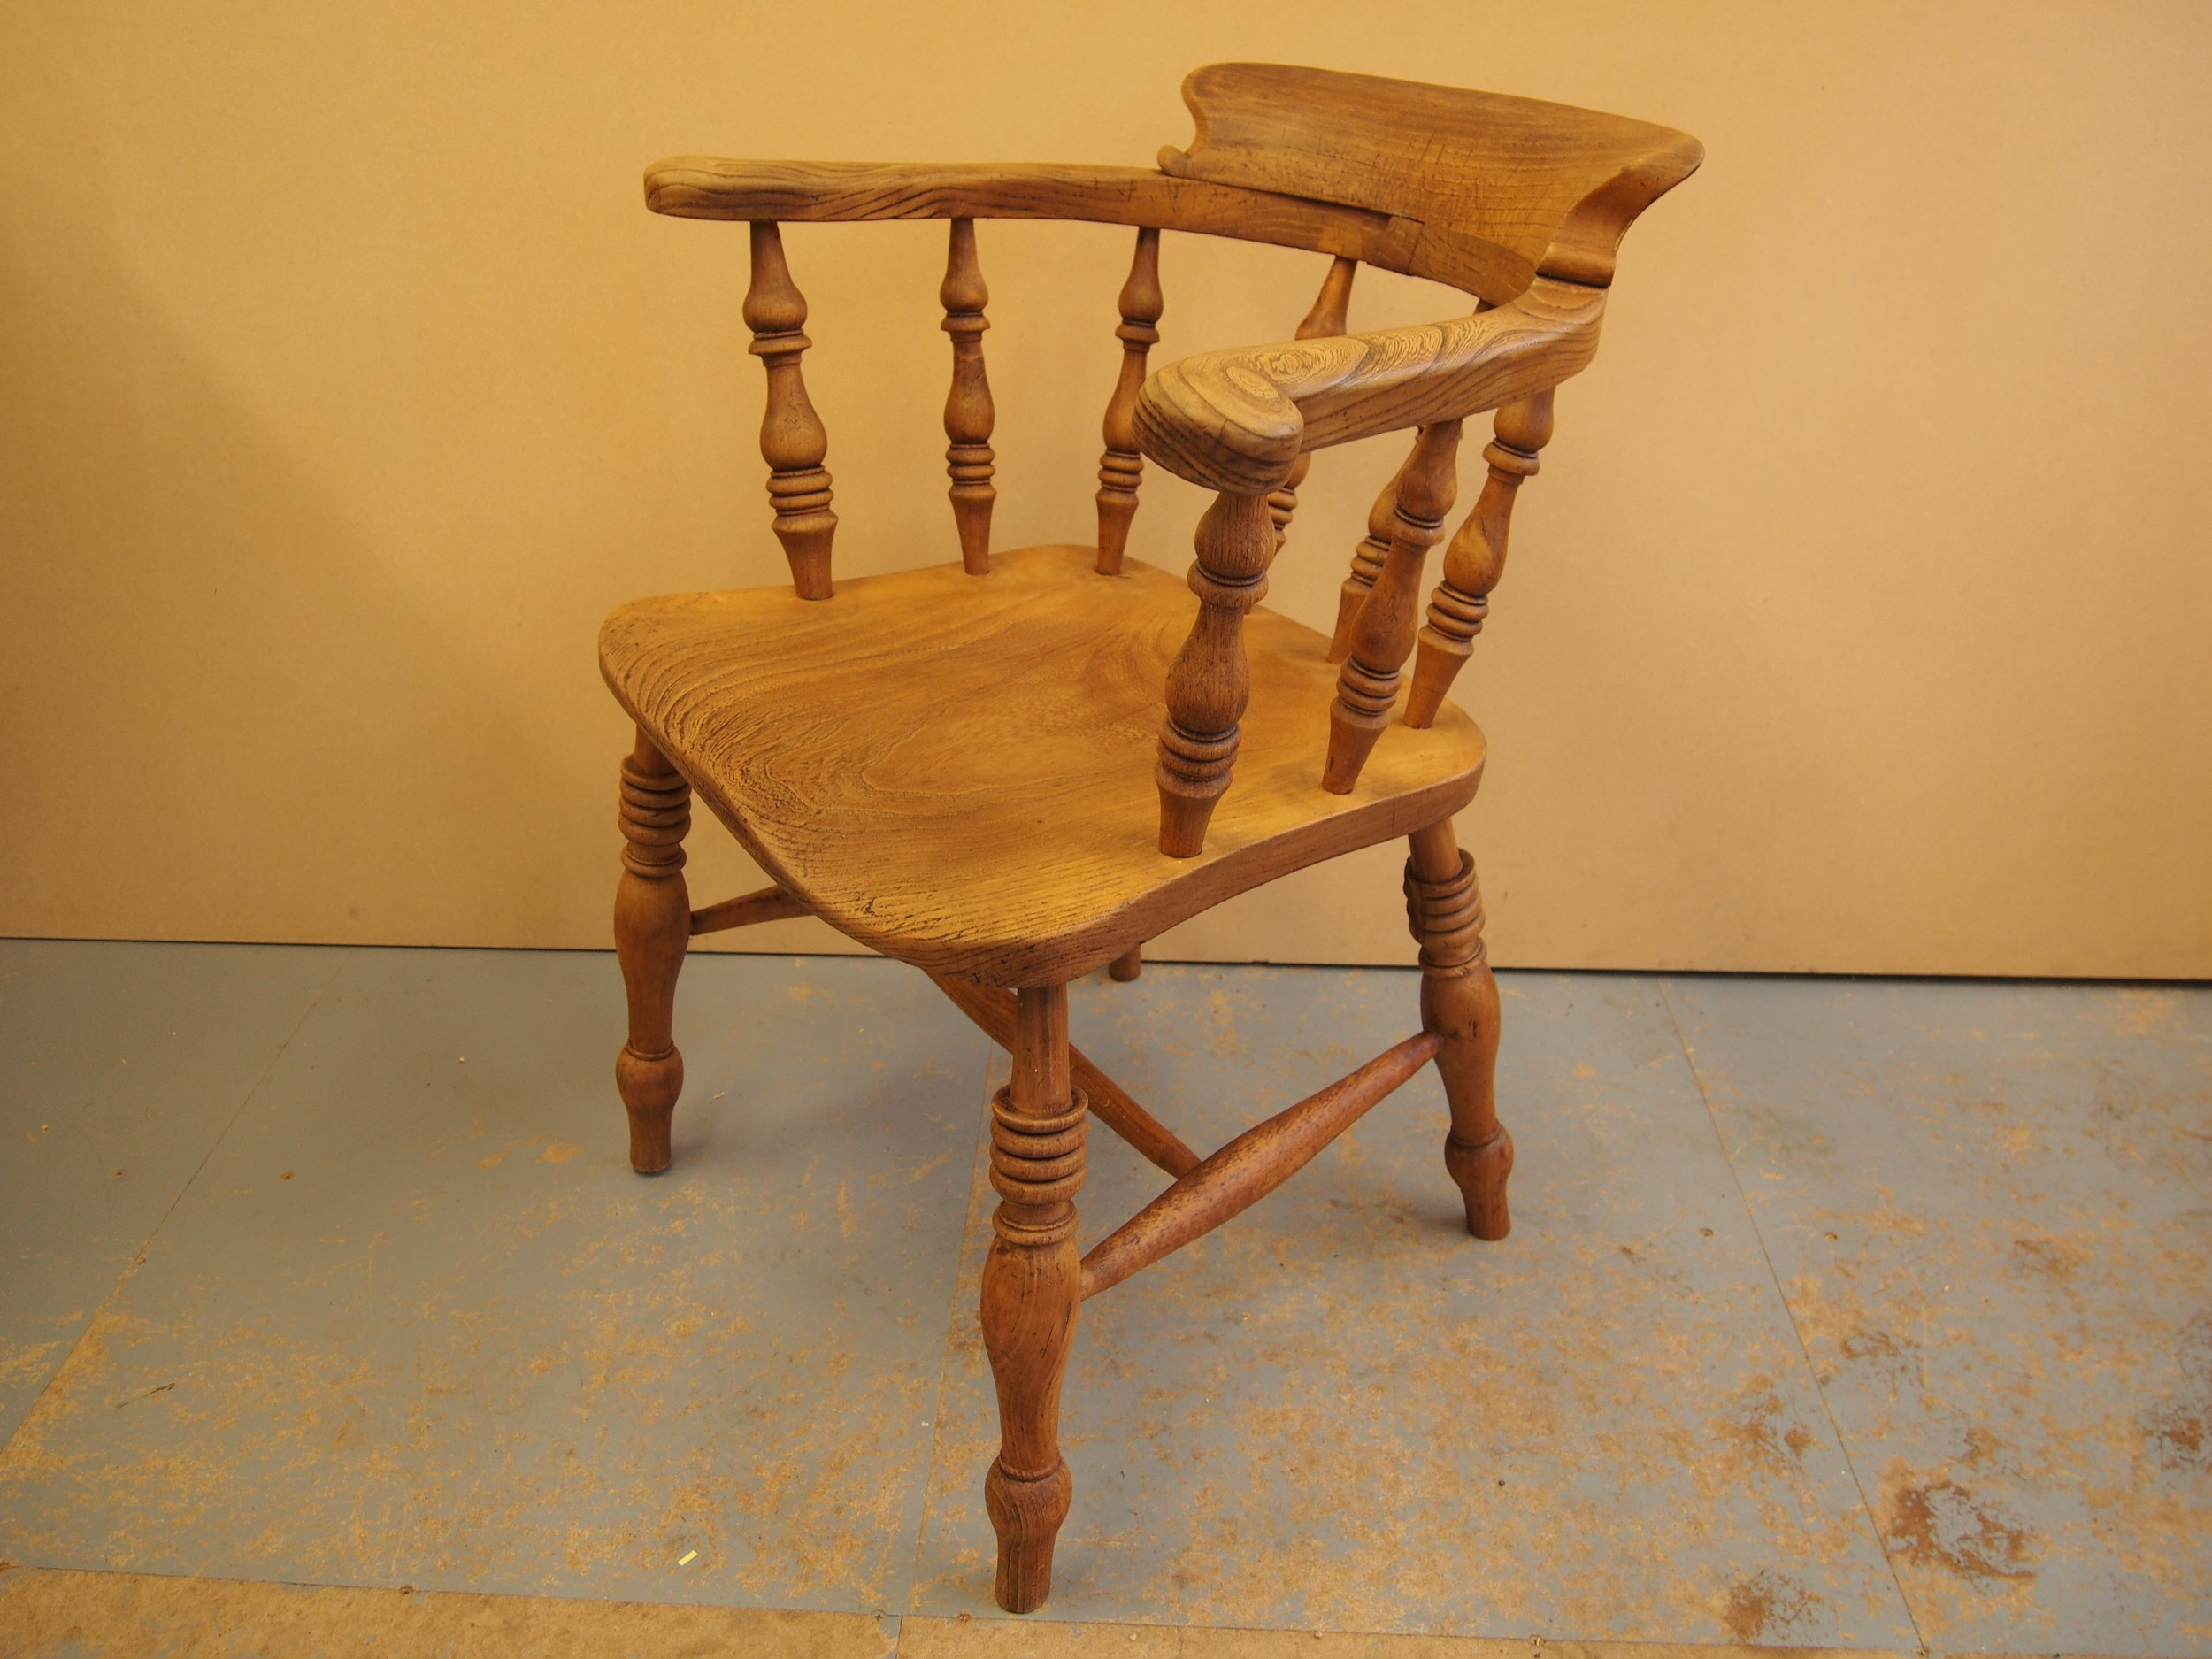 After Restoration of Captain's Arm Chair   This sentimental Captain's Arm Chair was to be stripped of its original dark finish and to have a light brown finish applied.